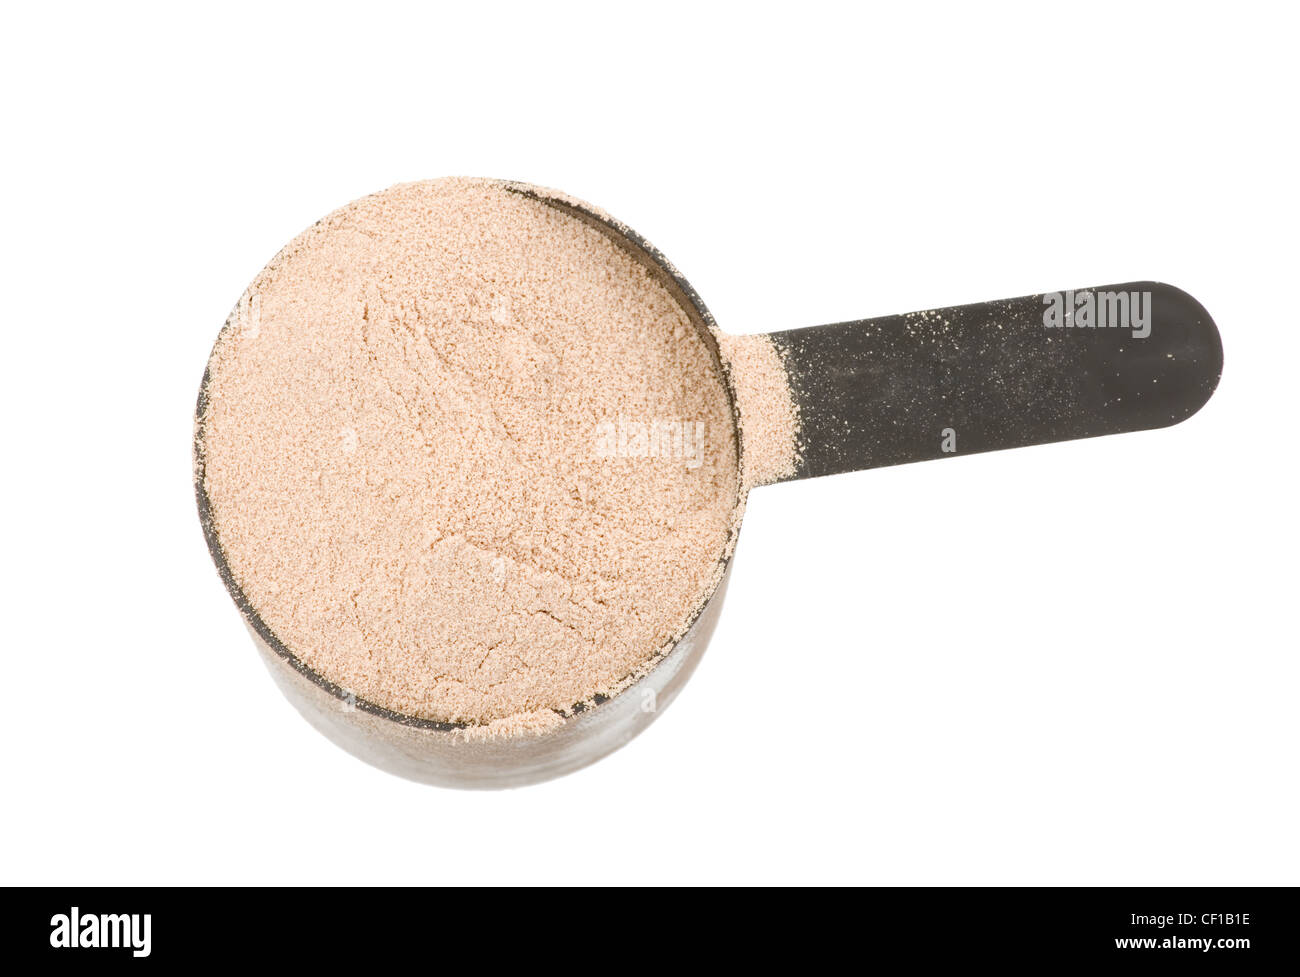 chocolate flavor protein powder in a plastic scoop isolated on white background - Stock Image